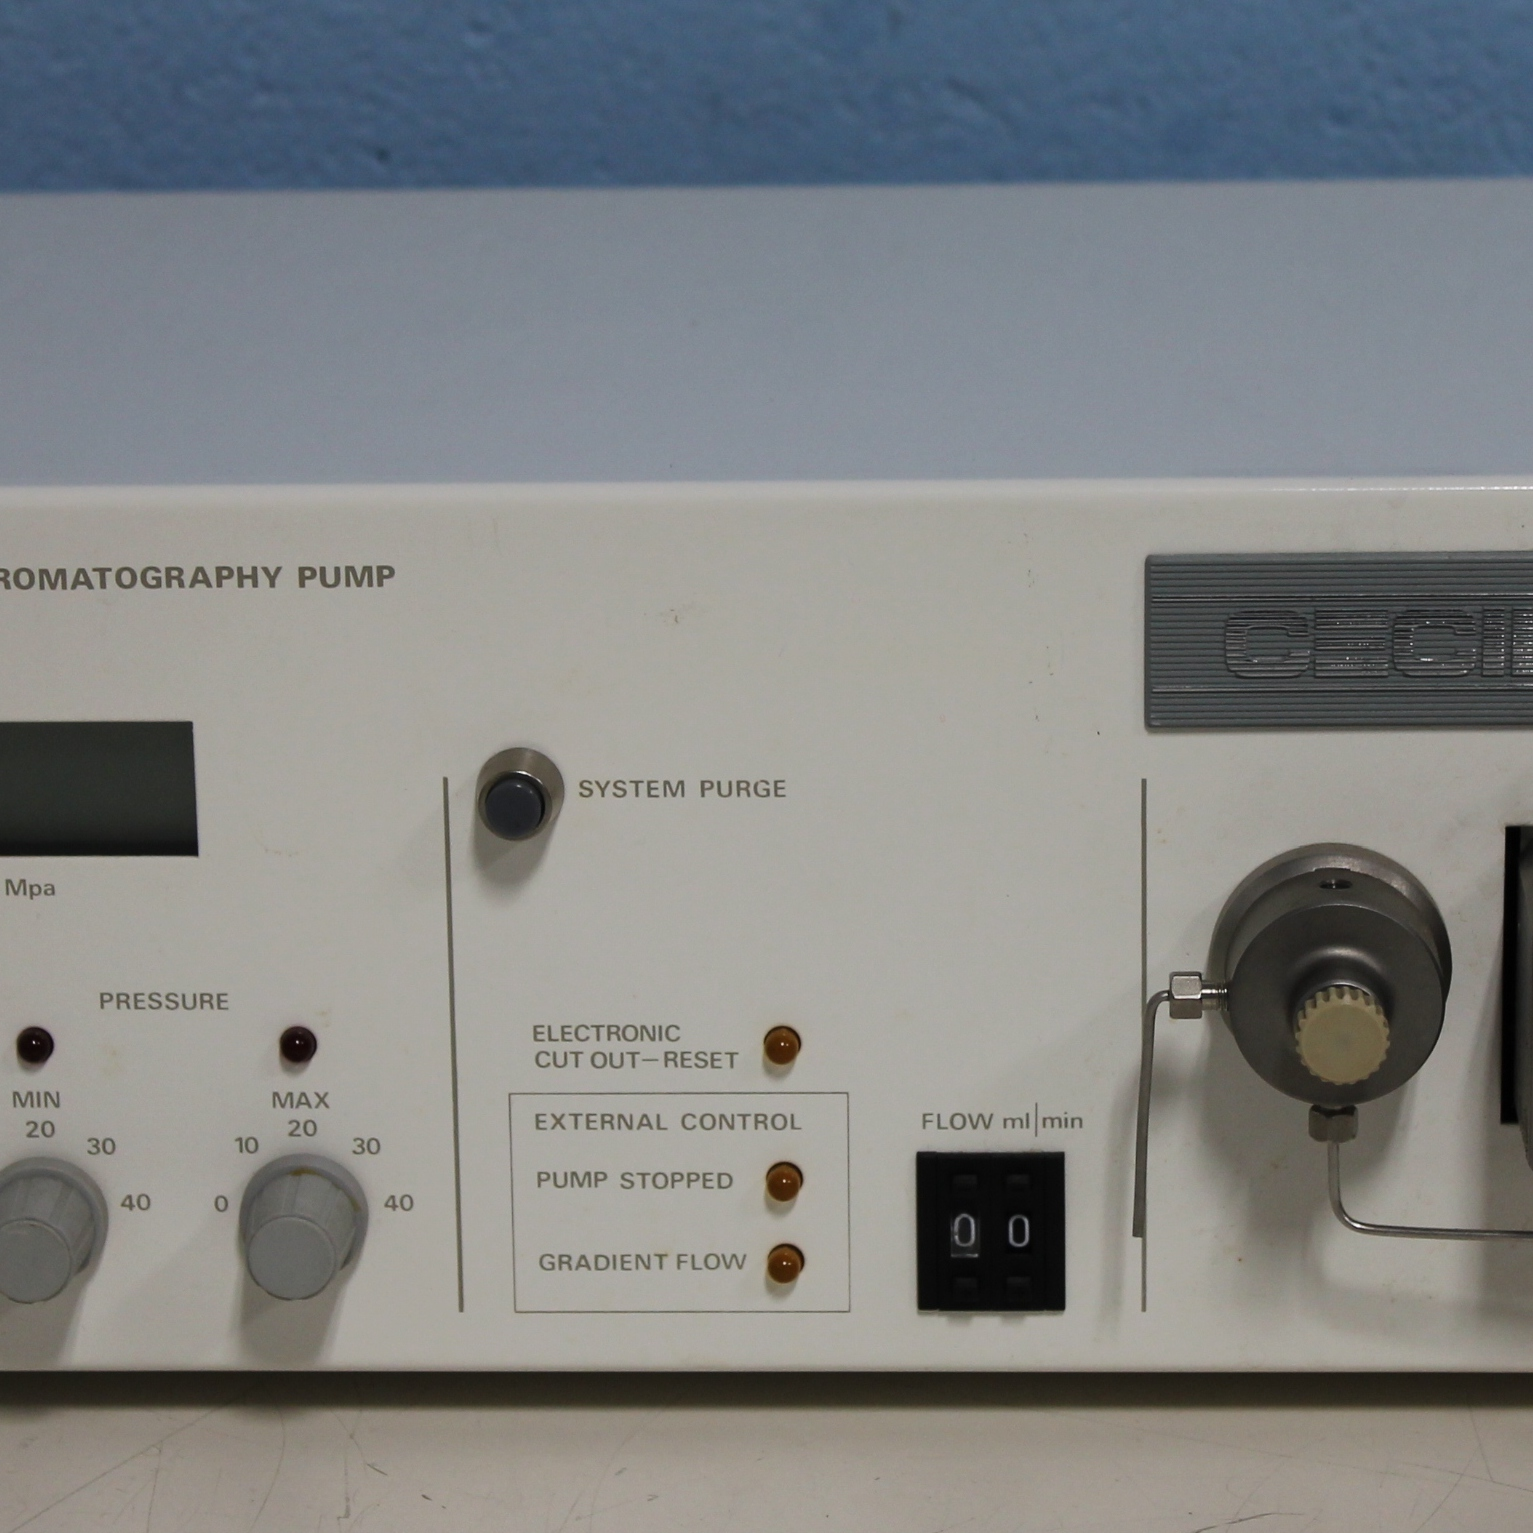 1100 Series CE1100 Liquid Chromatography Pump Name